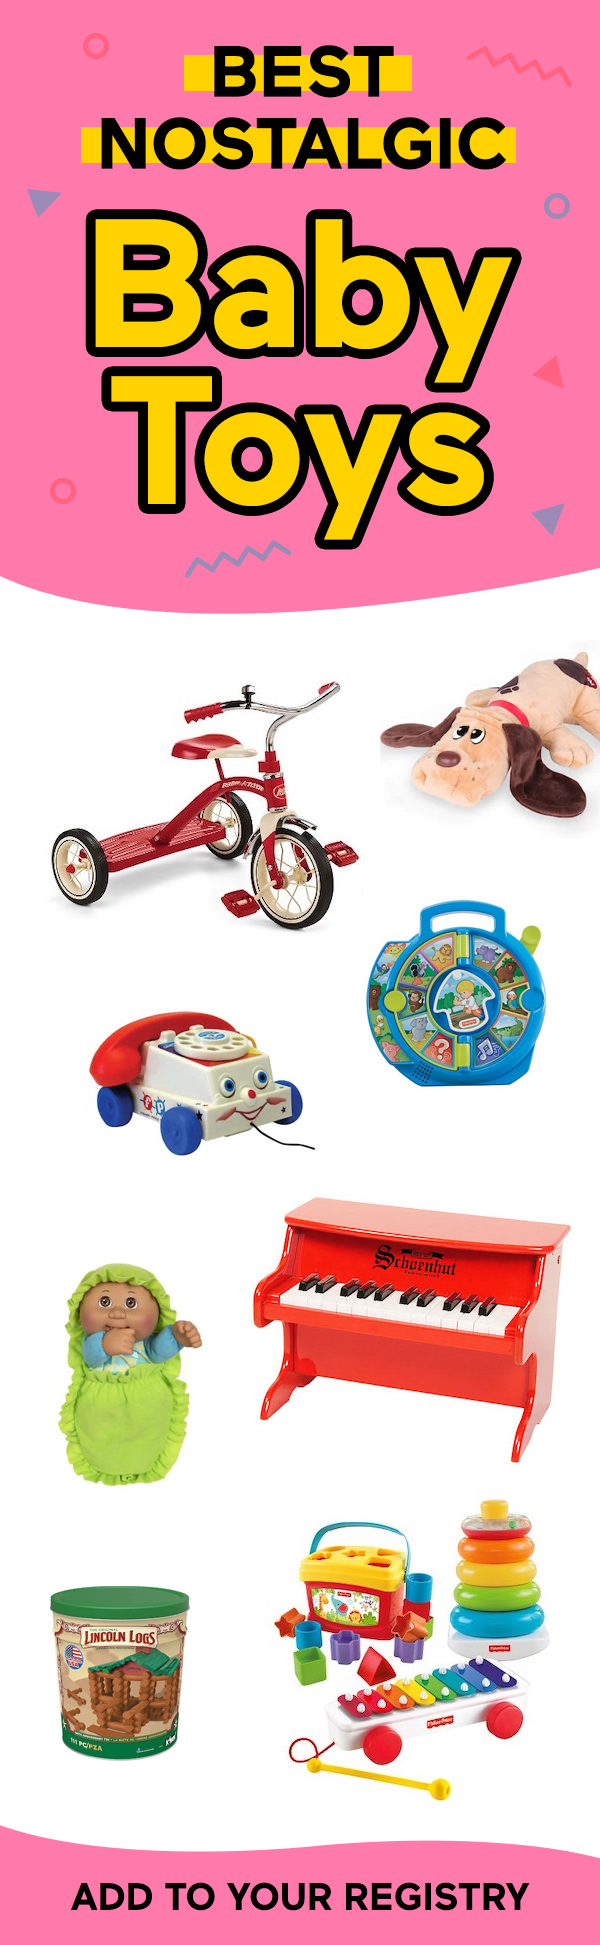 Feel like reminiscing about your own childhood? Your little one will surely love these timeless toys, too.